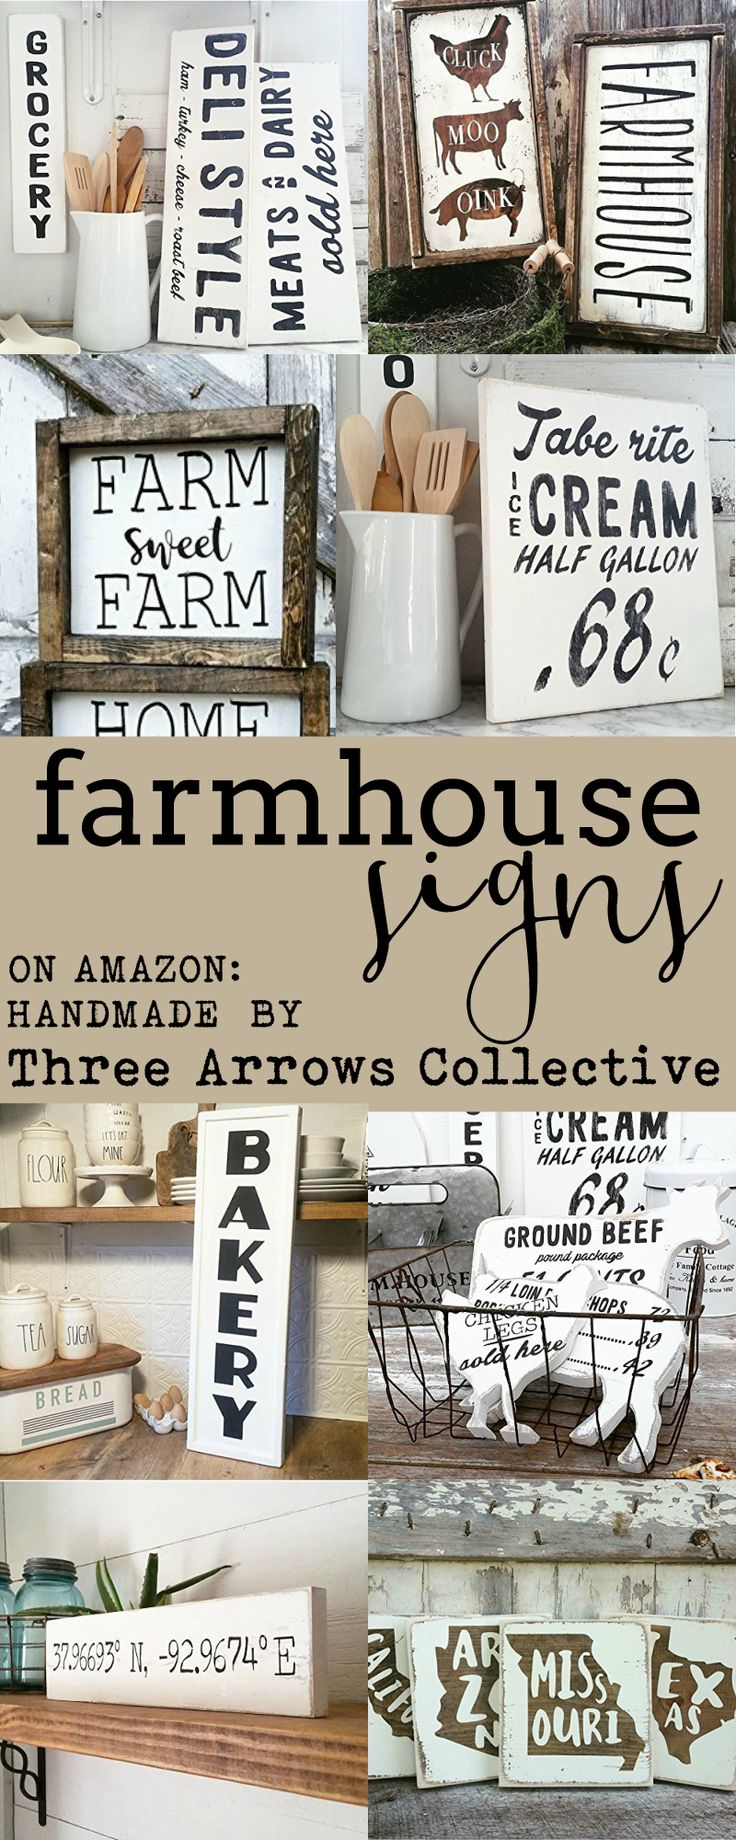 Amazon has this section on their site of handmade products. My favorite, of course, is the rustic and farmhouse items here. Three Arrows Collective is a small